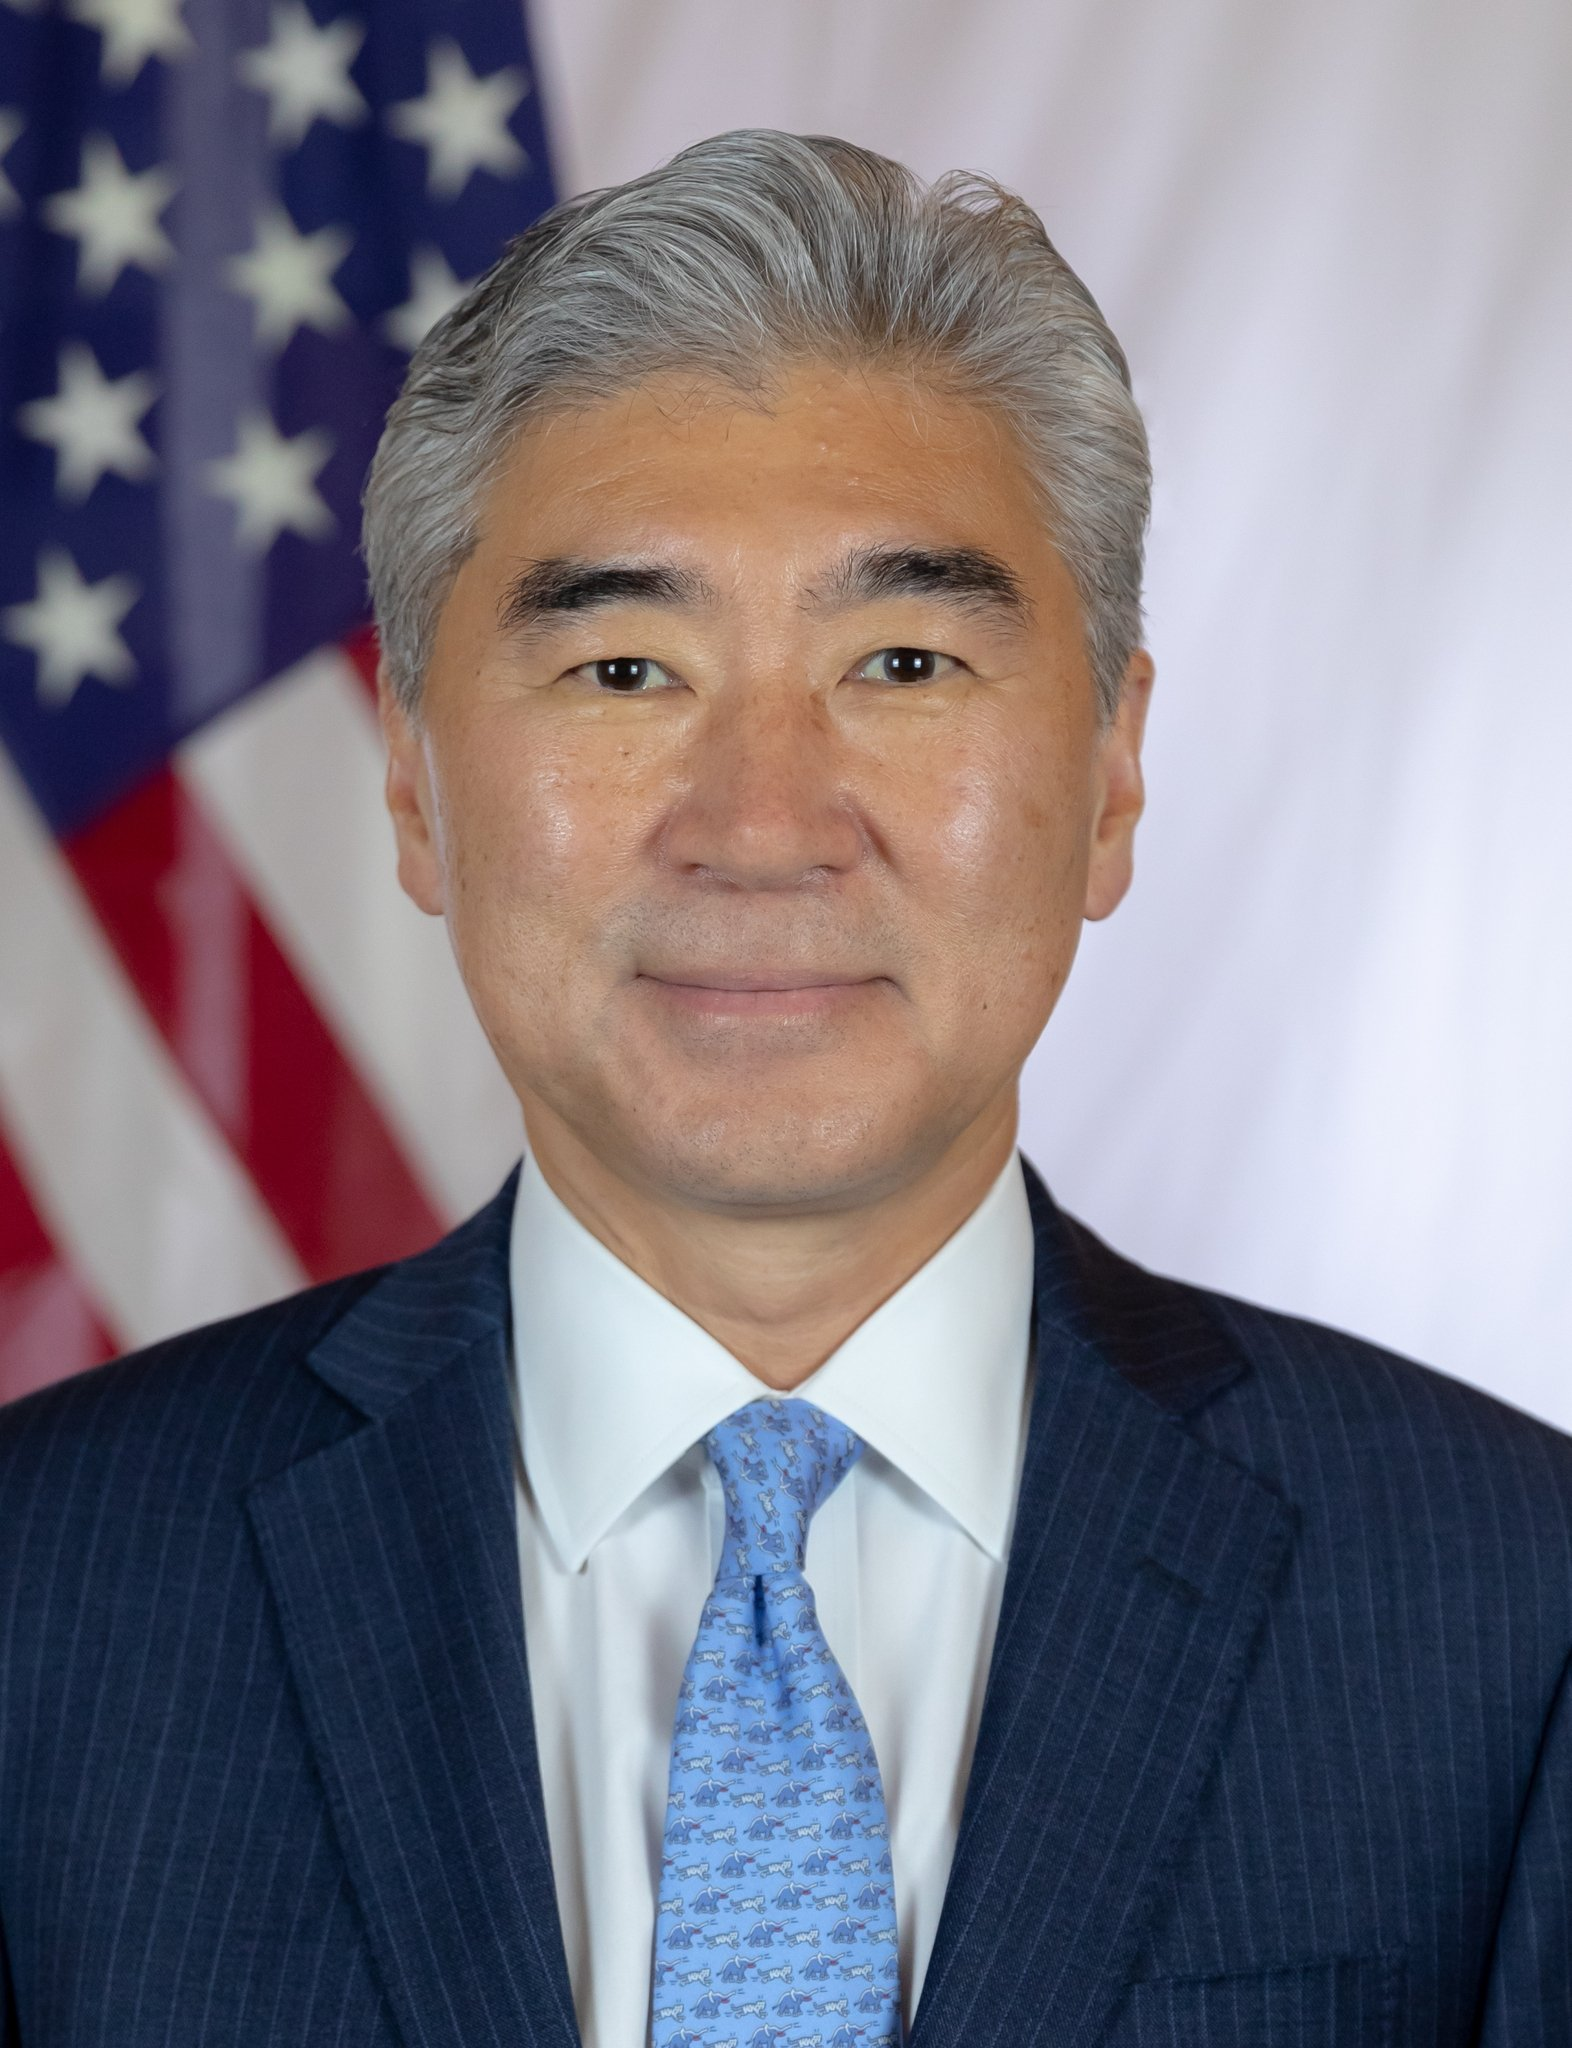 Special envoy to North Korea Sung Kim poses for his U.S. Department of State photo, Oct. 8, 2020. (U.S. Department of State)